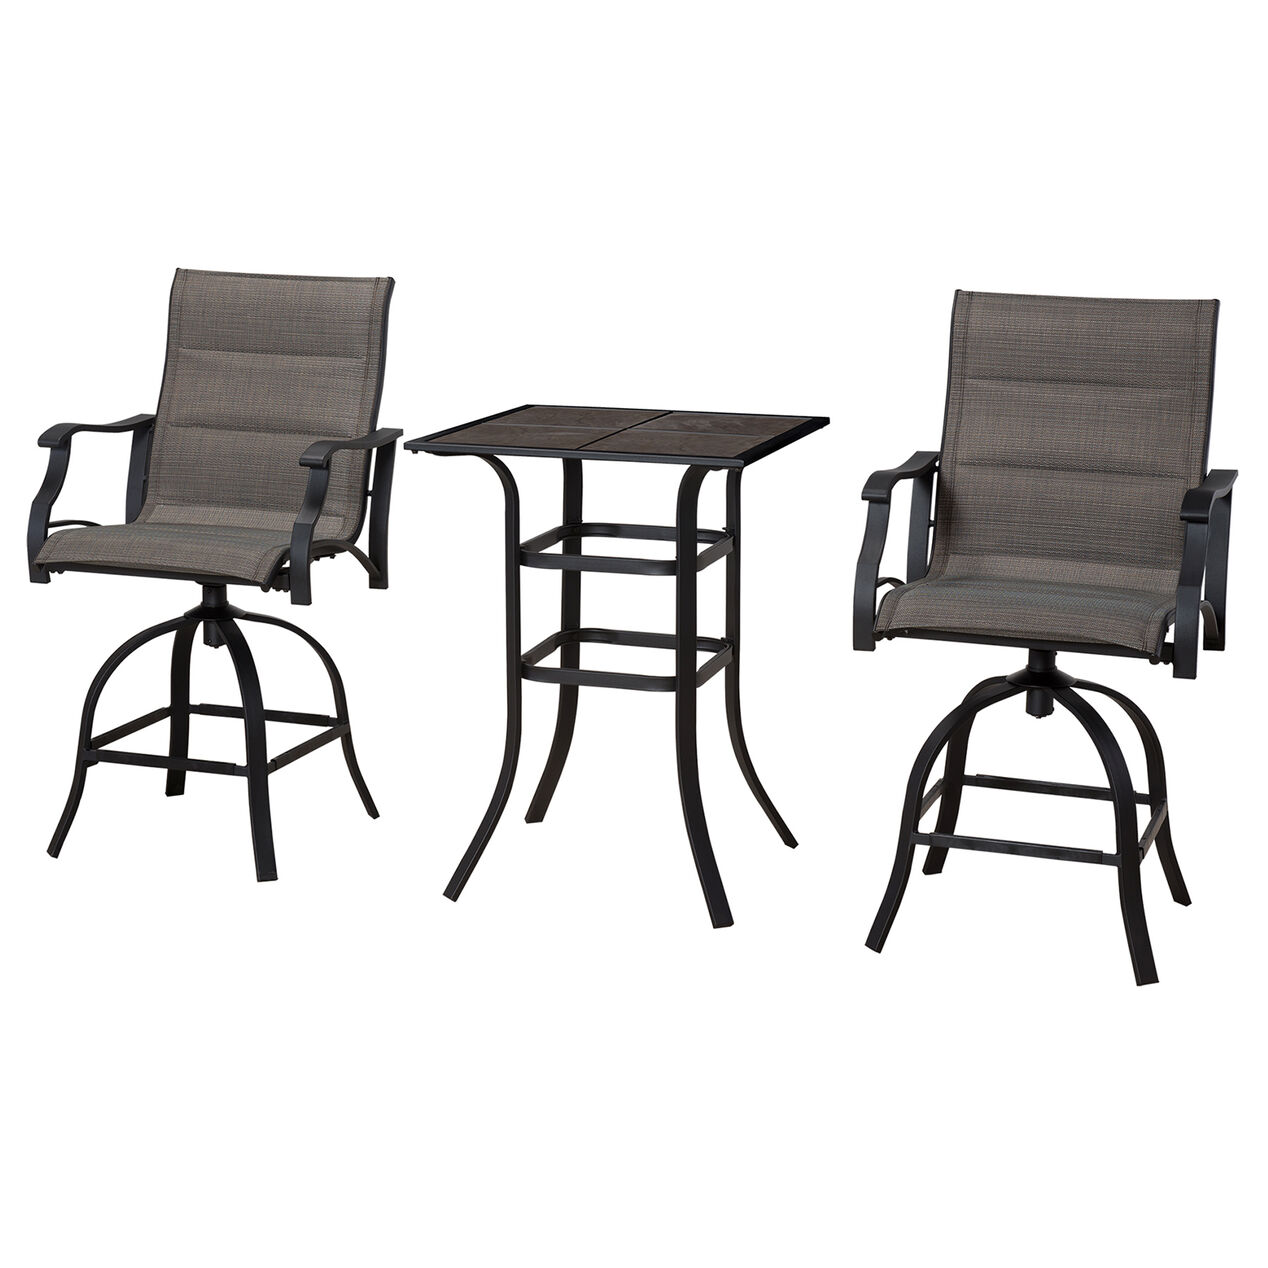 Zoom. Malibu Bistro 3 Piece Chair and High Table Set   At Home